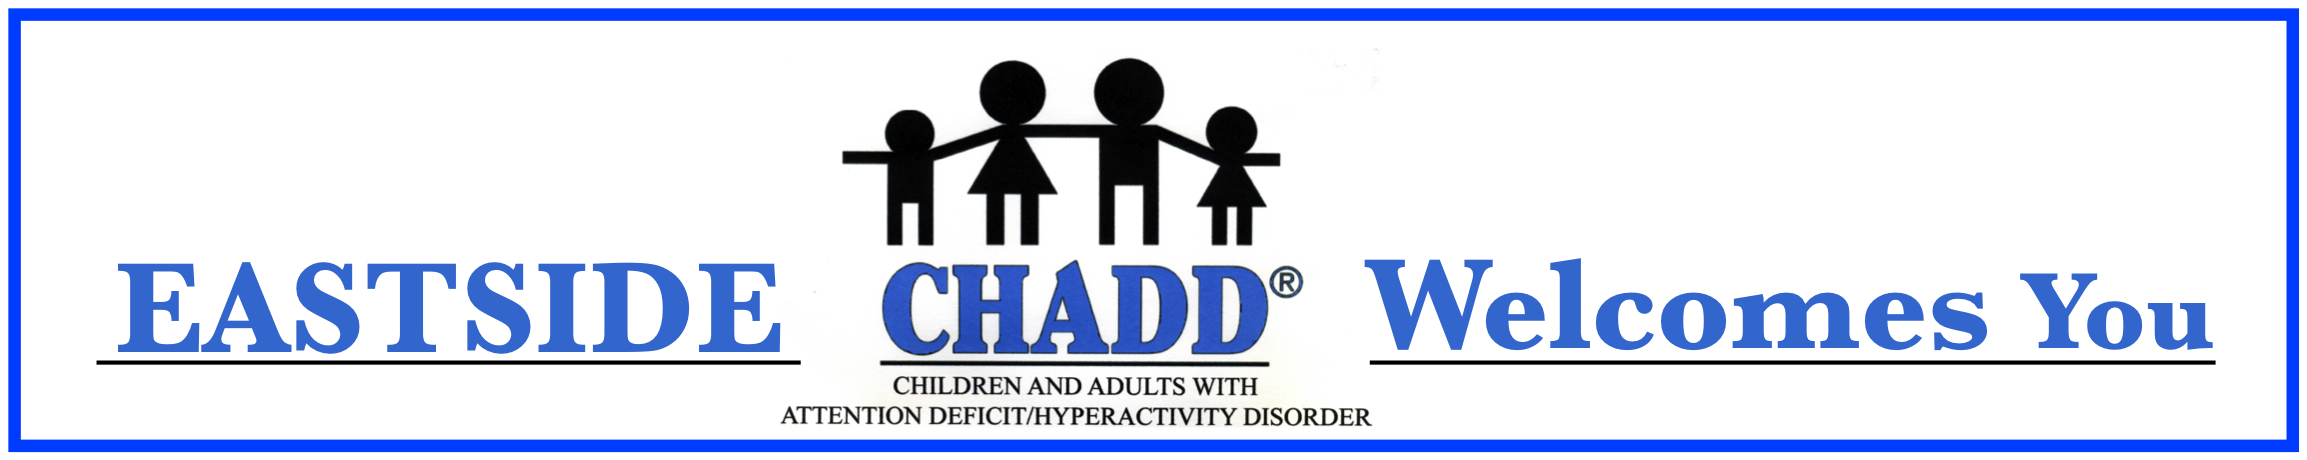 Eastside CHADD (Children and Adults with Attention Deficit-Hyperactivity            Disorder)